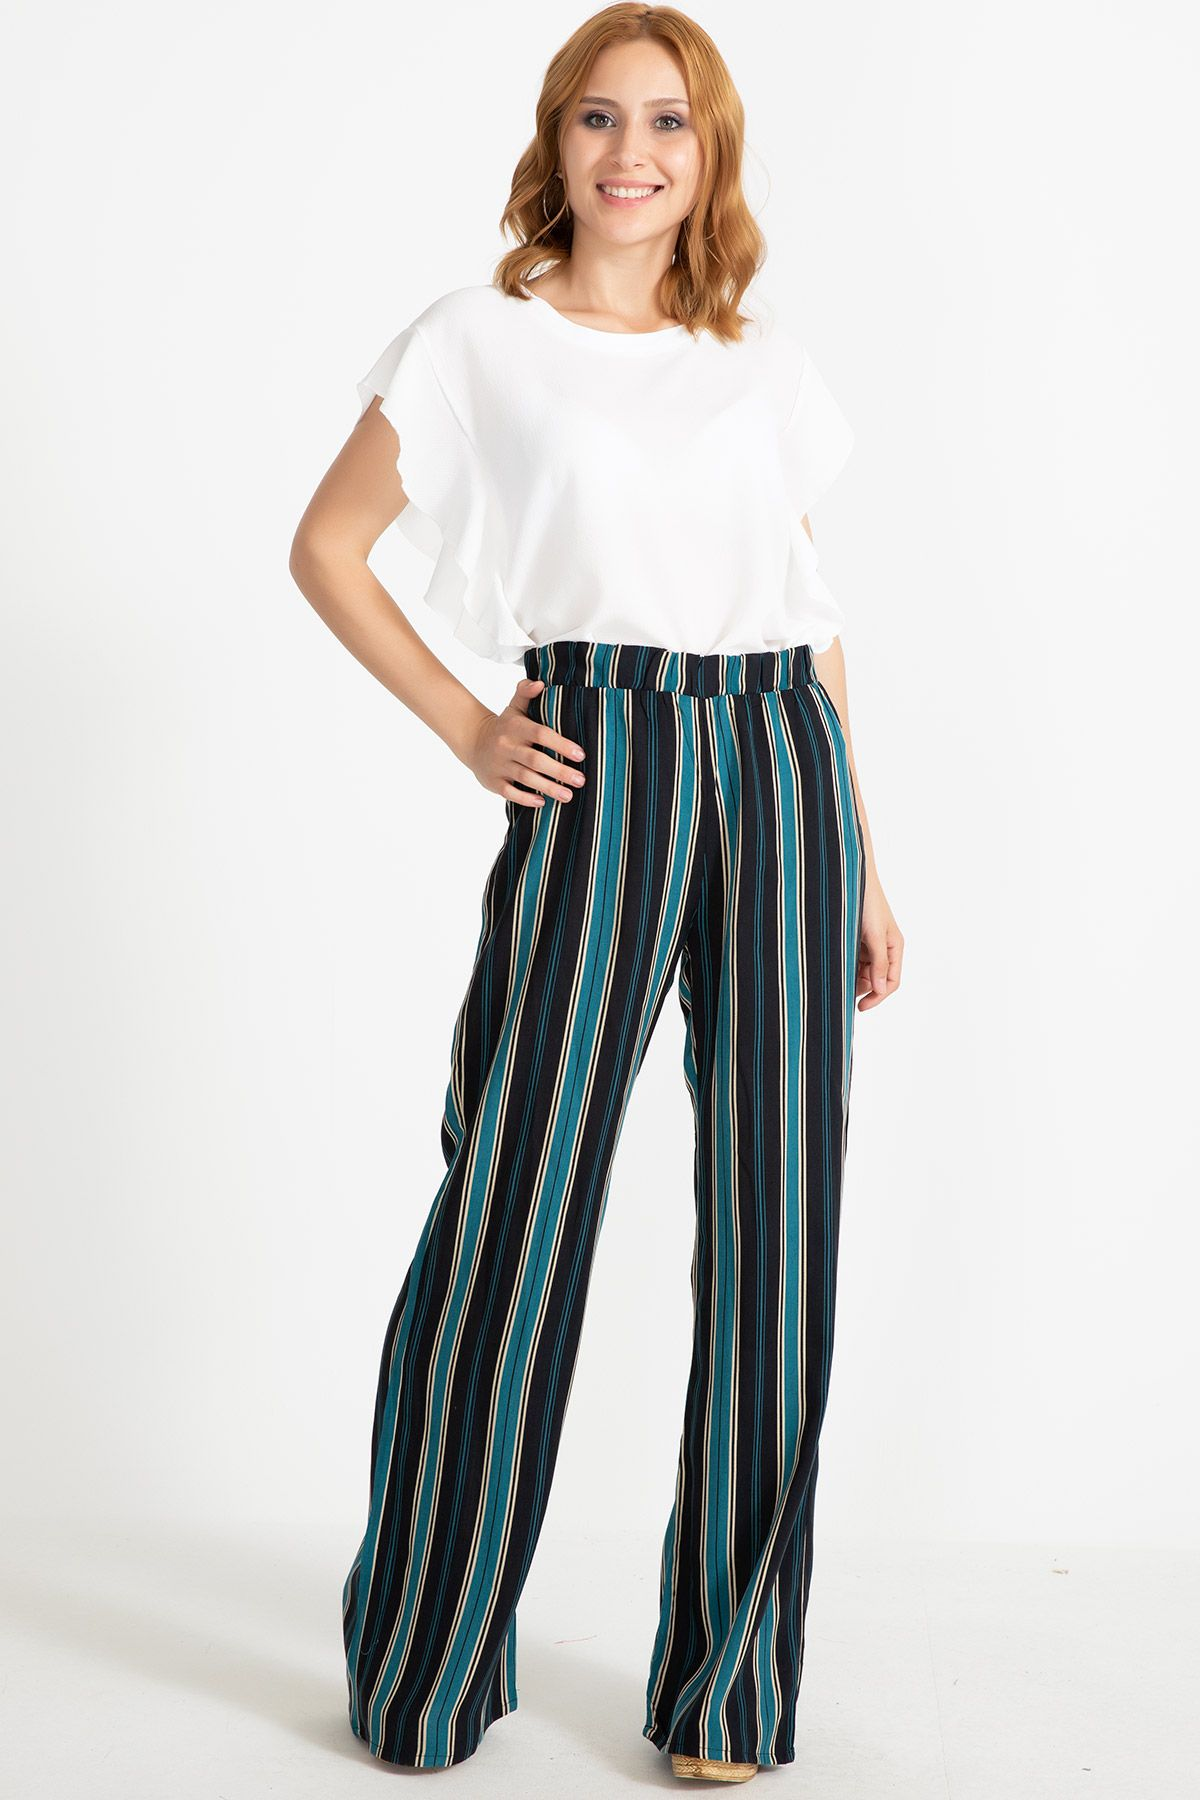 Boot Cut Pants-Multi color